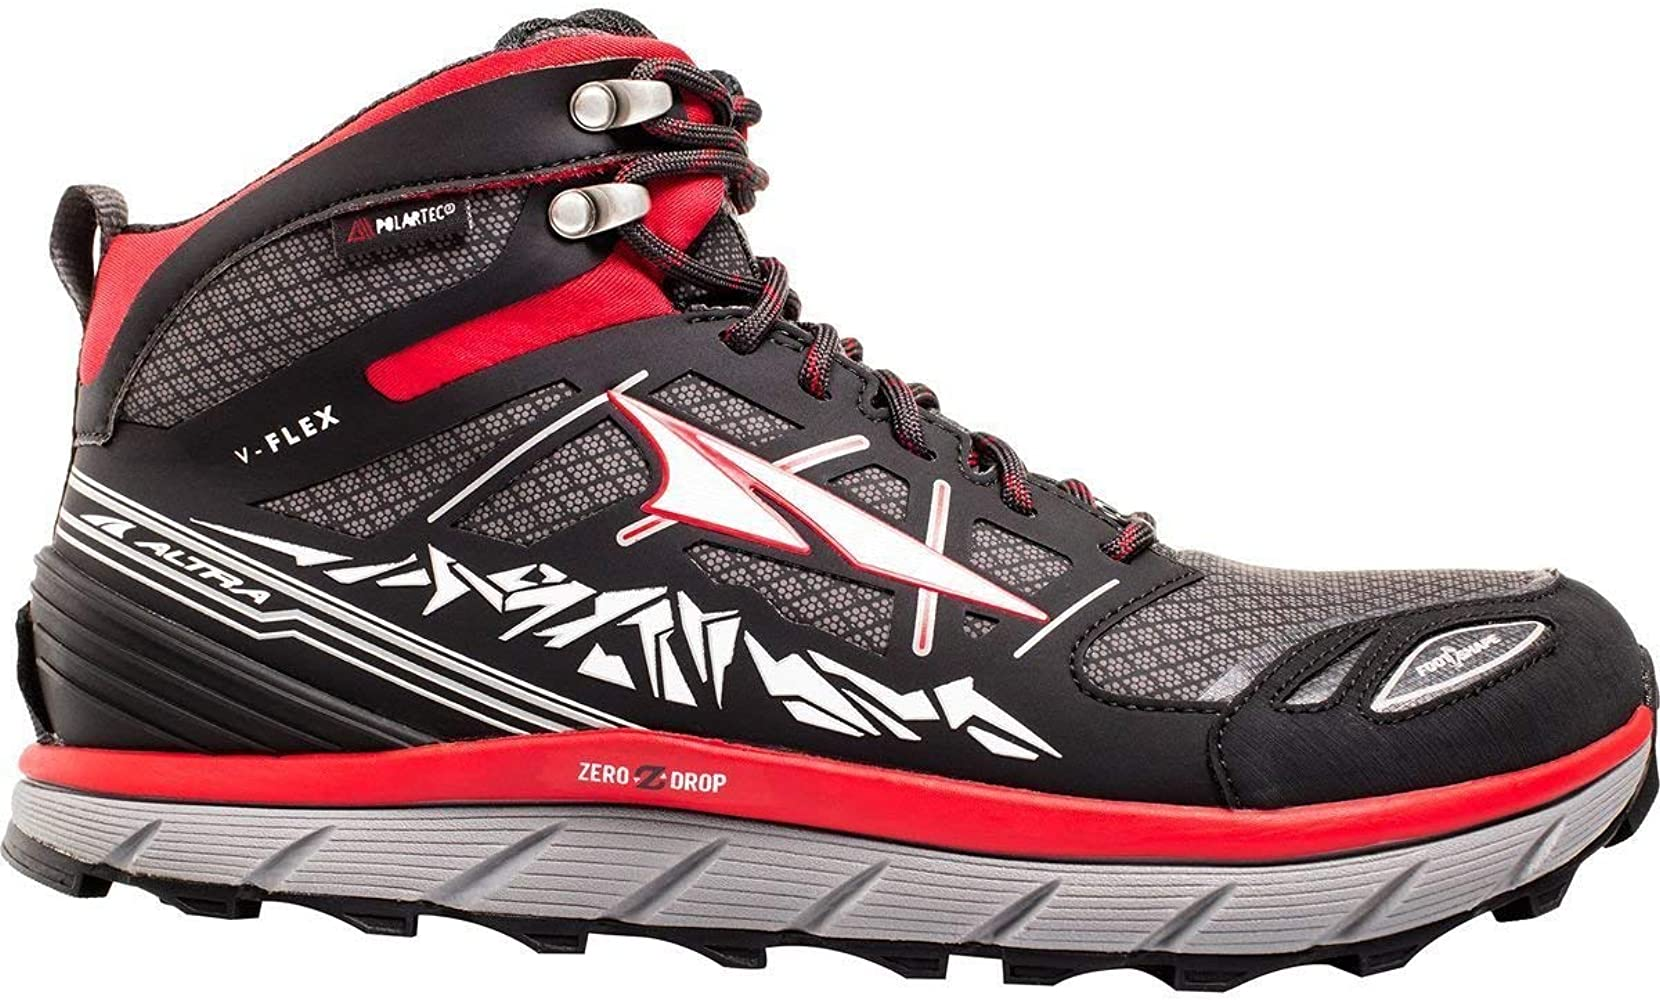 Altra Lone Peak 3.0 Mid Zapatillas de trail running: Amazon.es ...